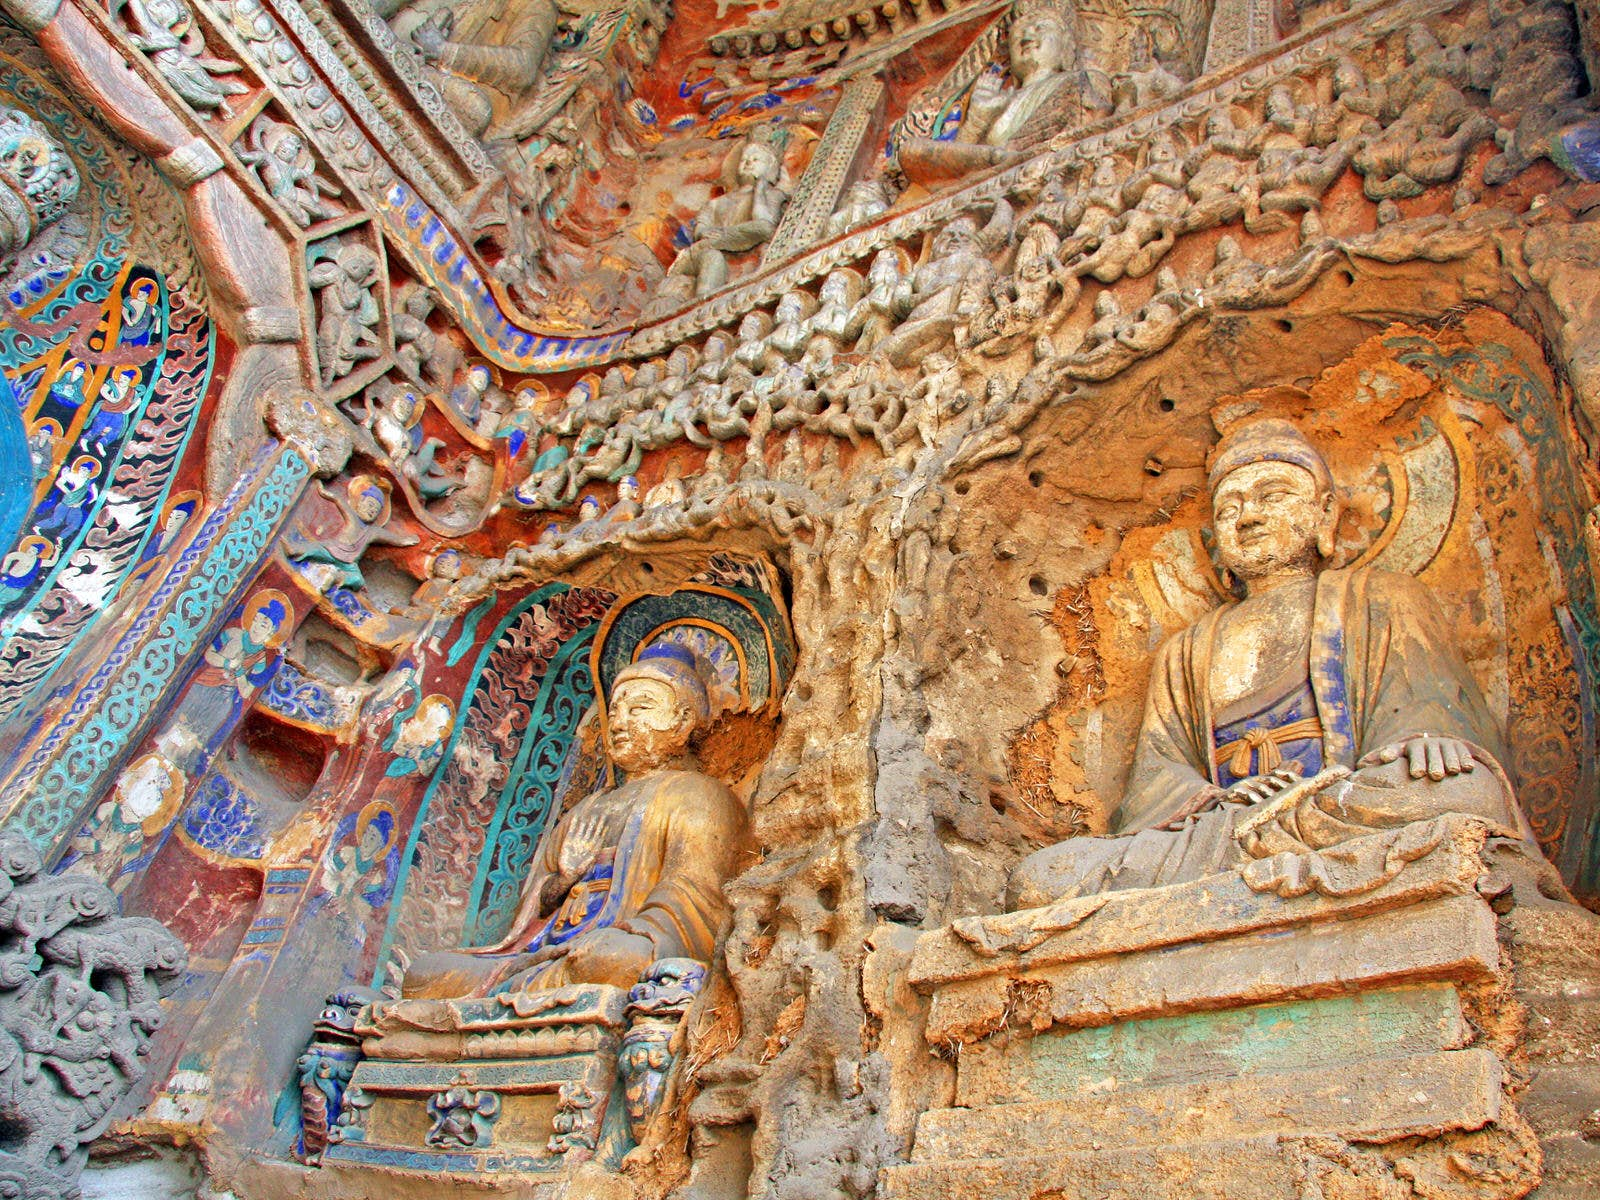 China S Buddhist Caves The Enduring Art Of The Silk Road Lonely Planet